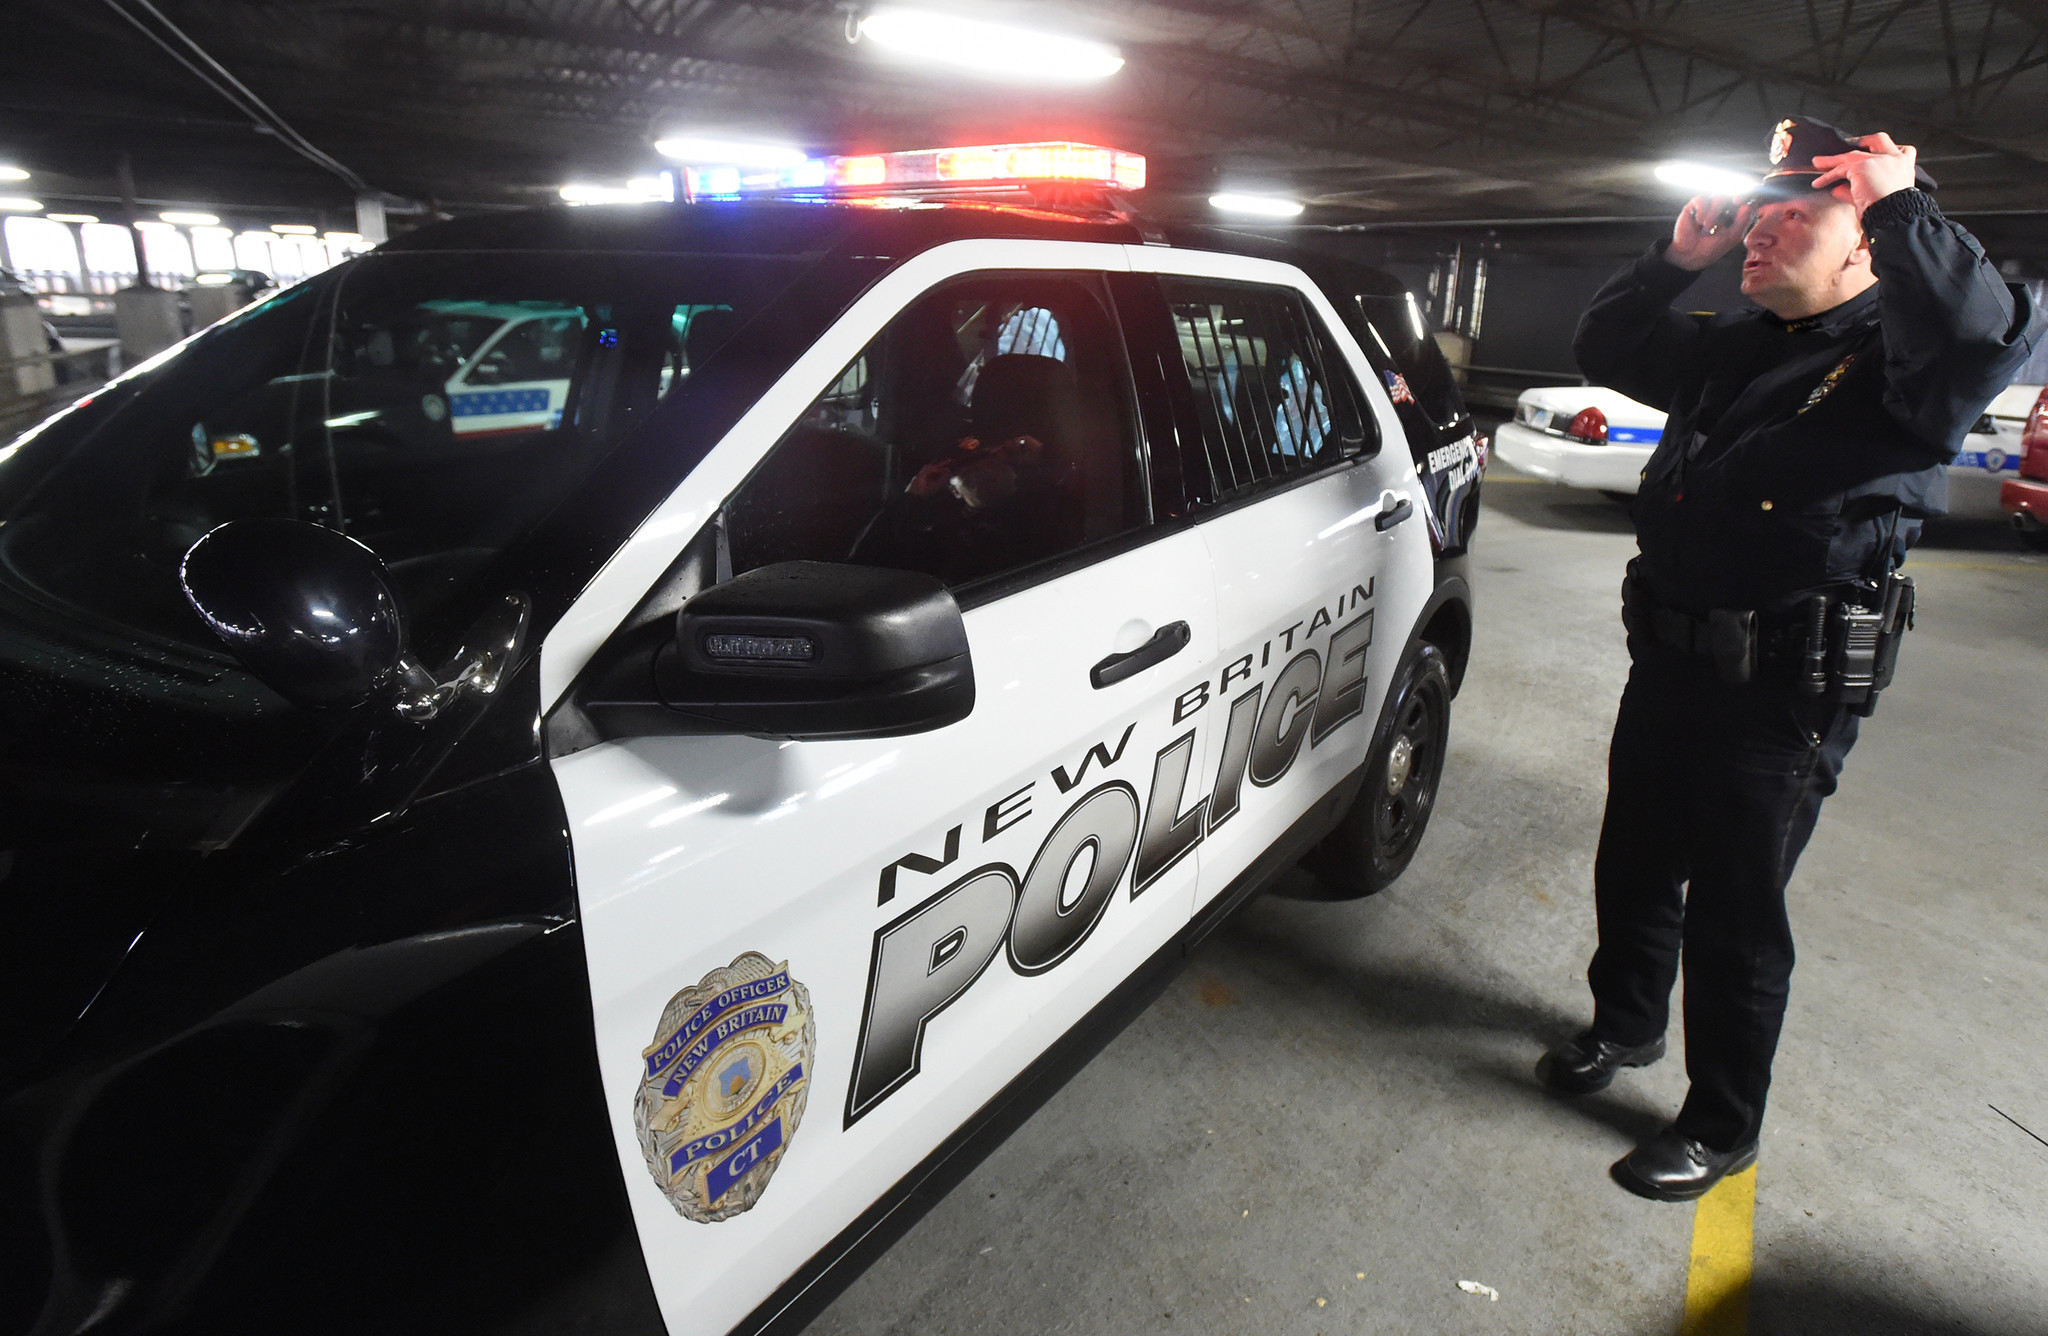 connecticut departments redefining police car hartford courant